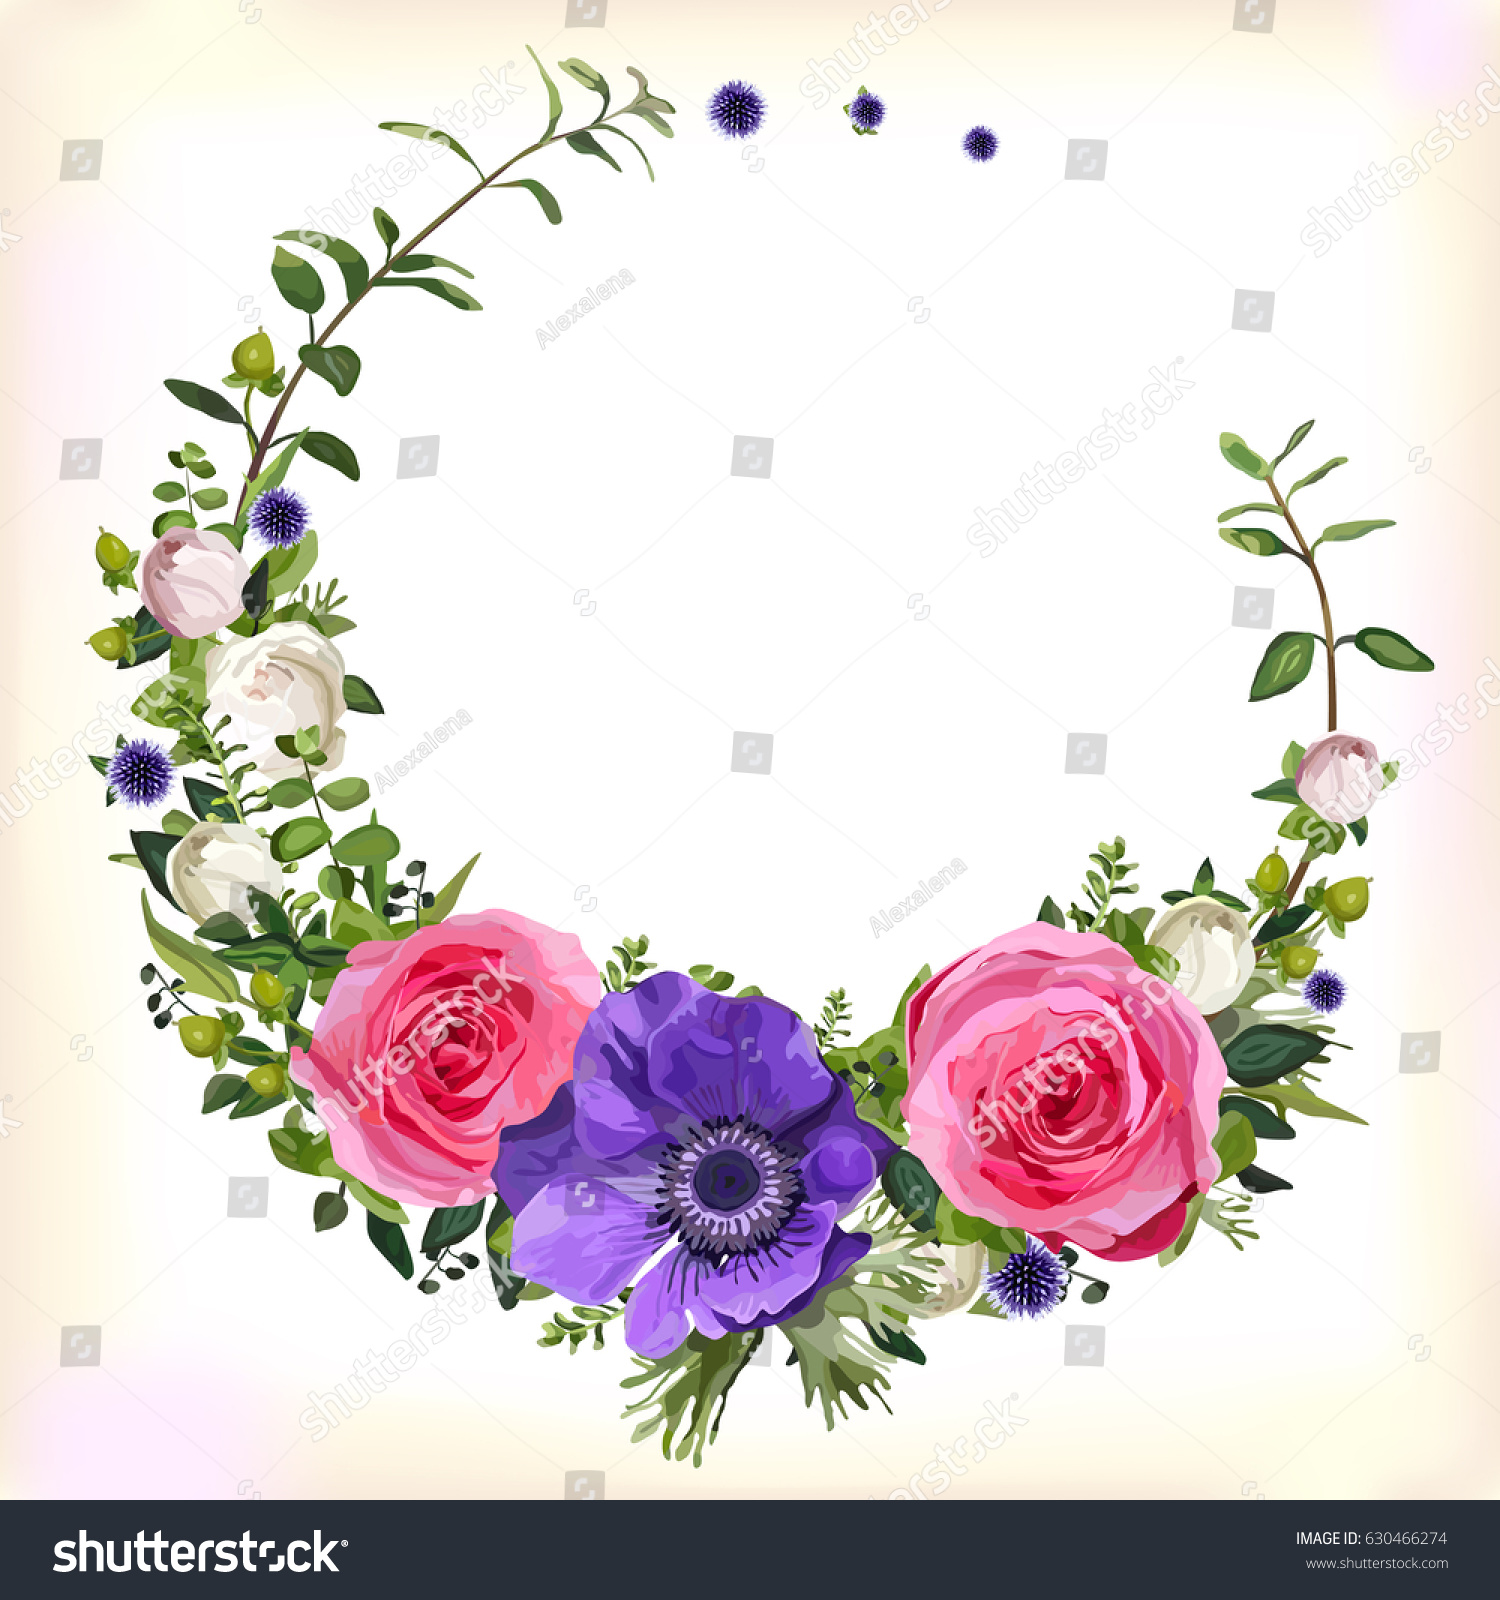 Vector round frame with pink flowers on white background in pastel - Flower Circle Round Wreath Coronet Flowers Pink Rose Purple Anemone Poppy Leaves Beautiful Lovely Spring Summer